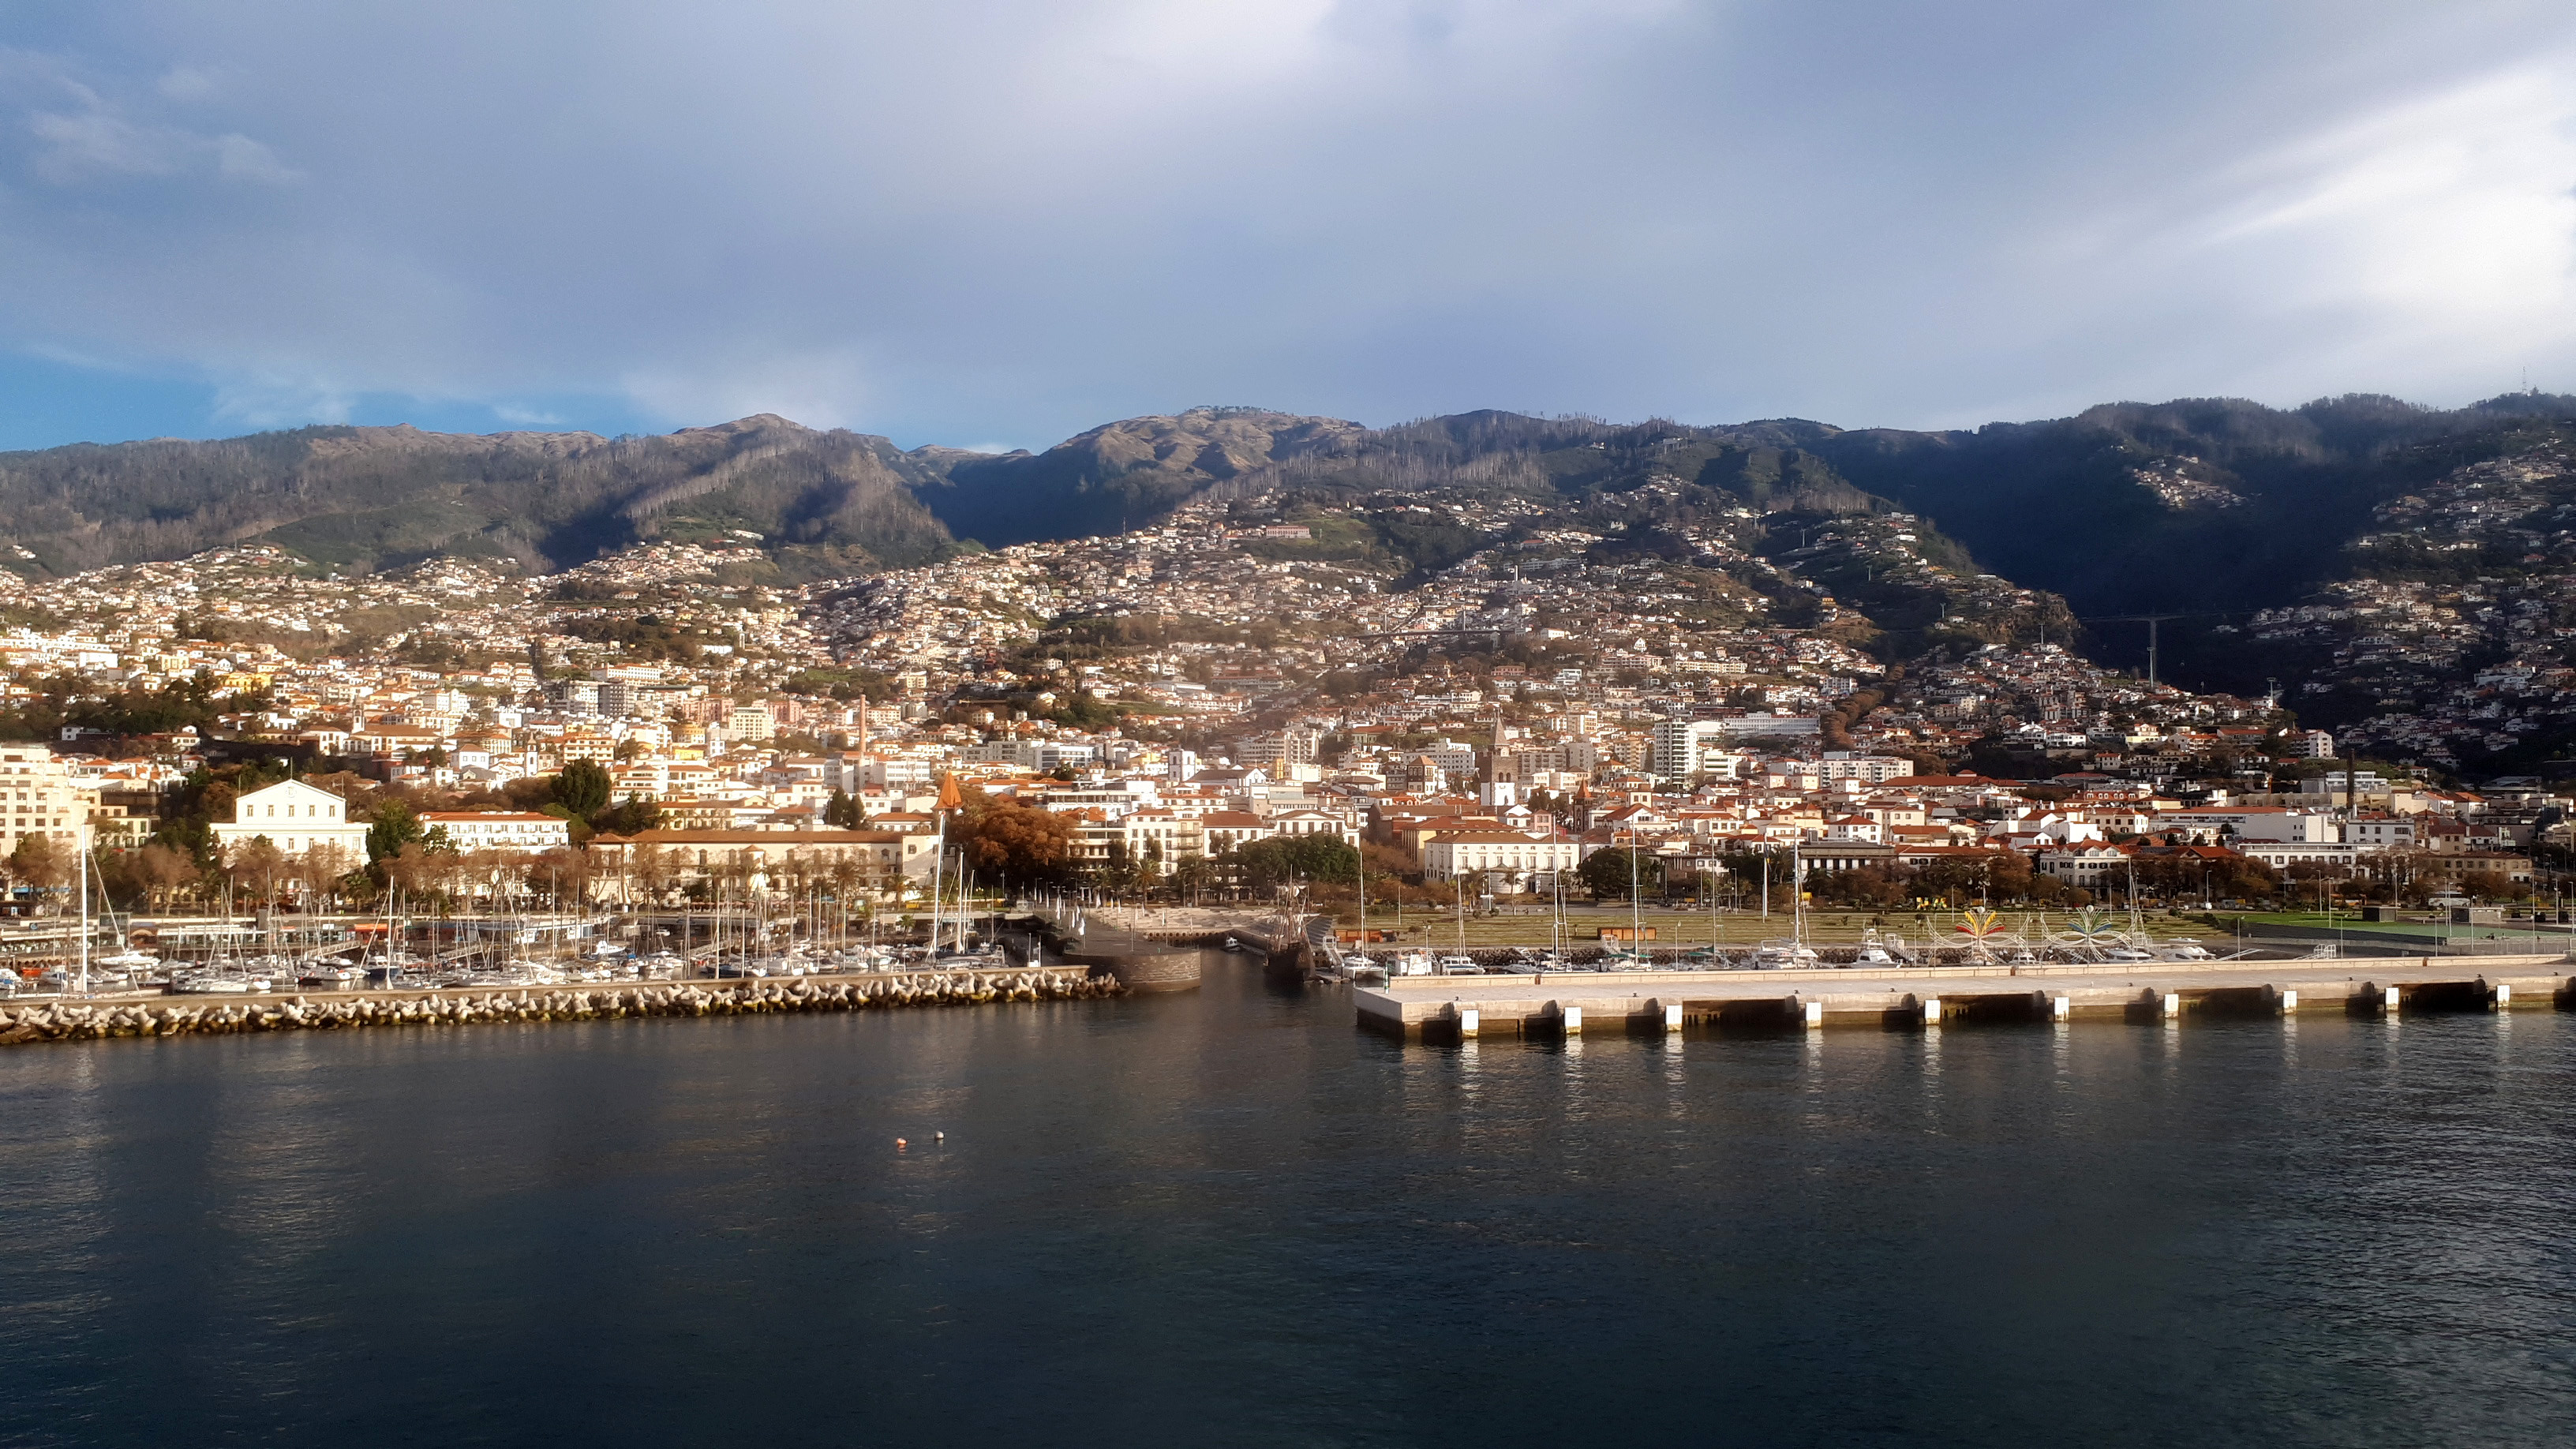 funchal-madeira-island-portugal-city-and